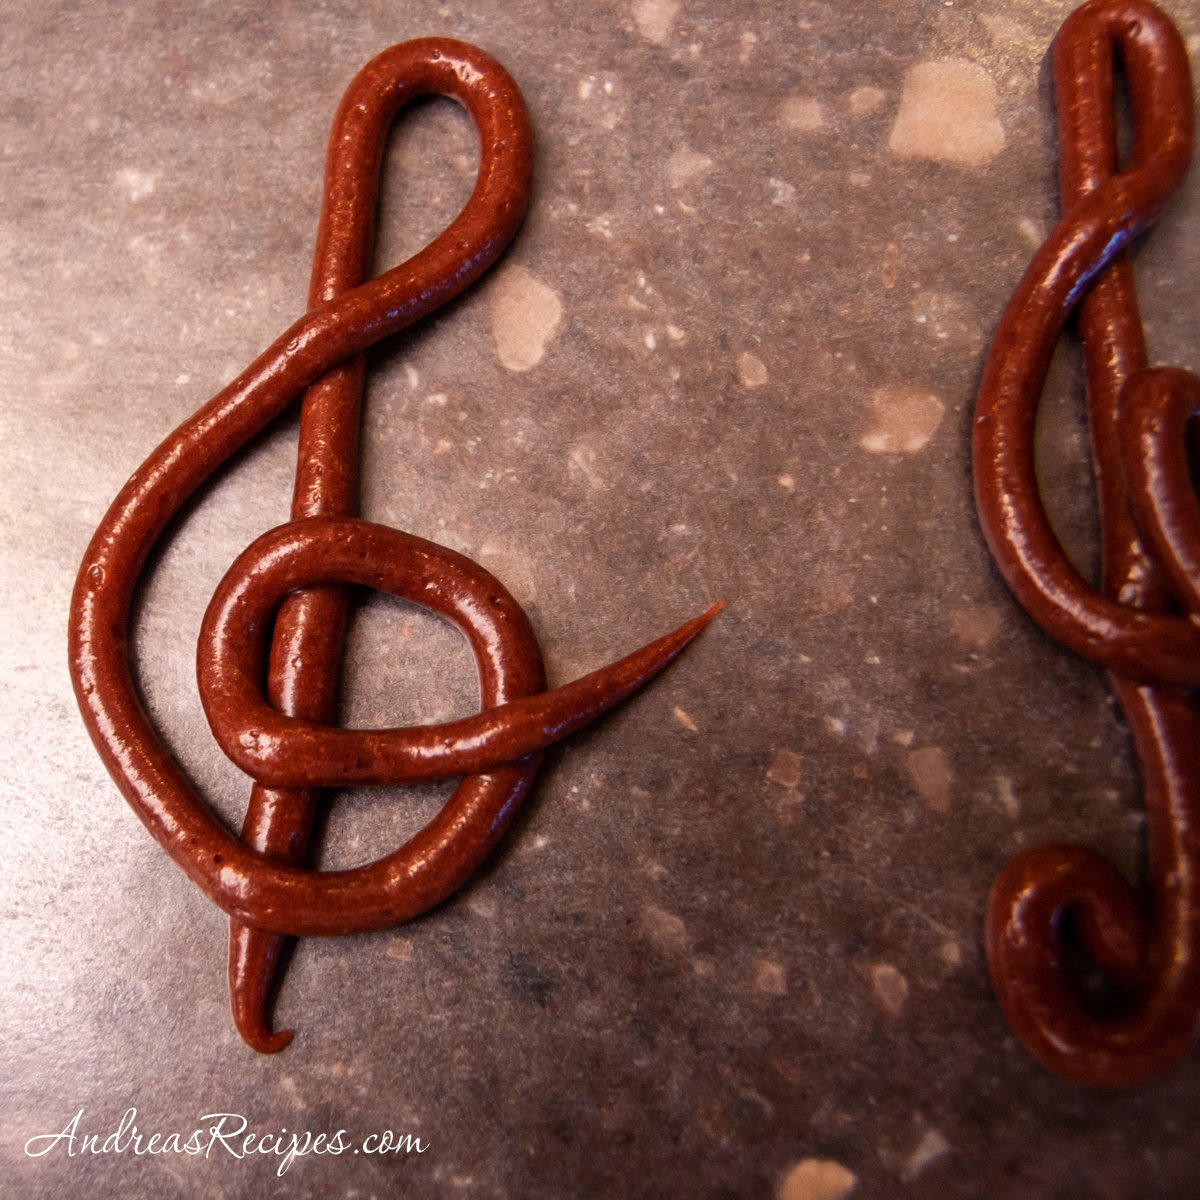 Opera cake G clefs piped with chocolate frosting - Andrea Meyers